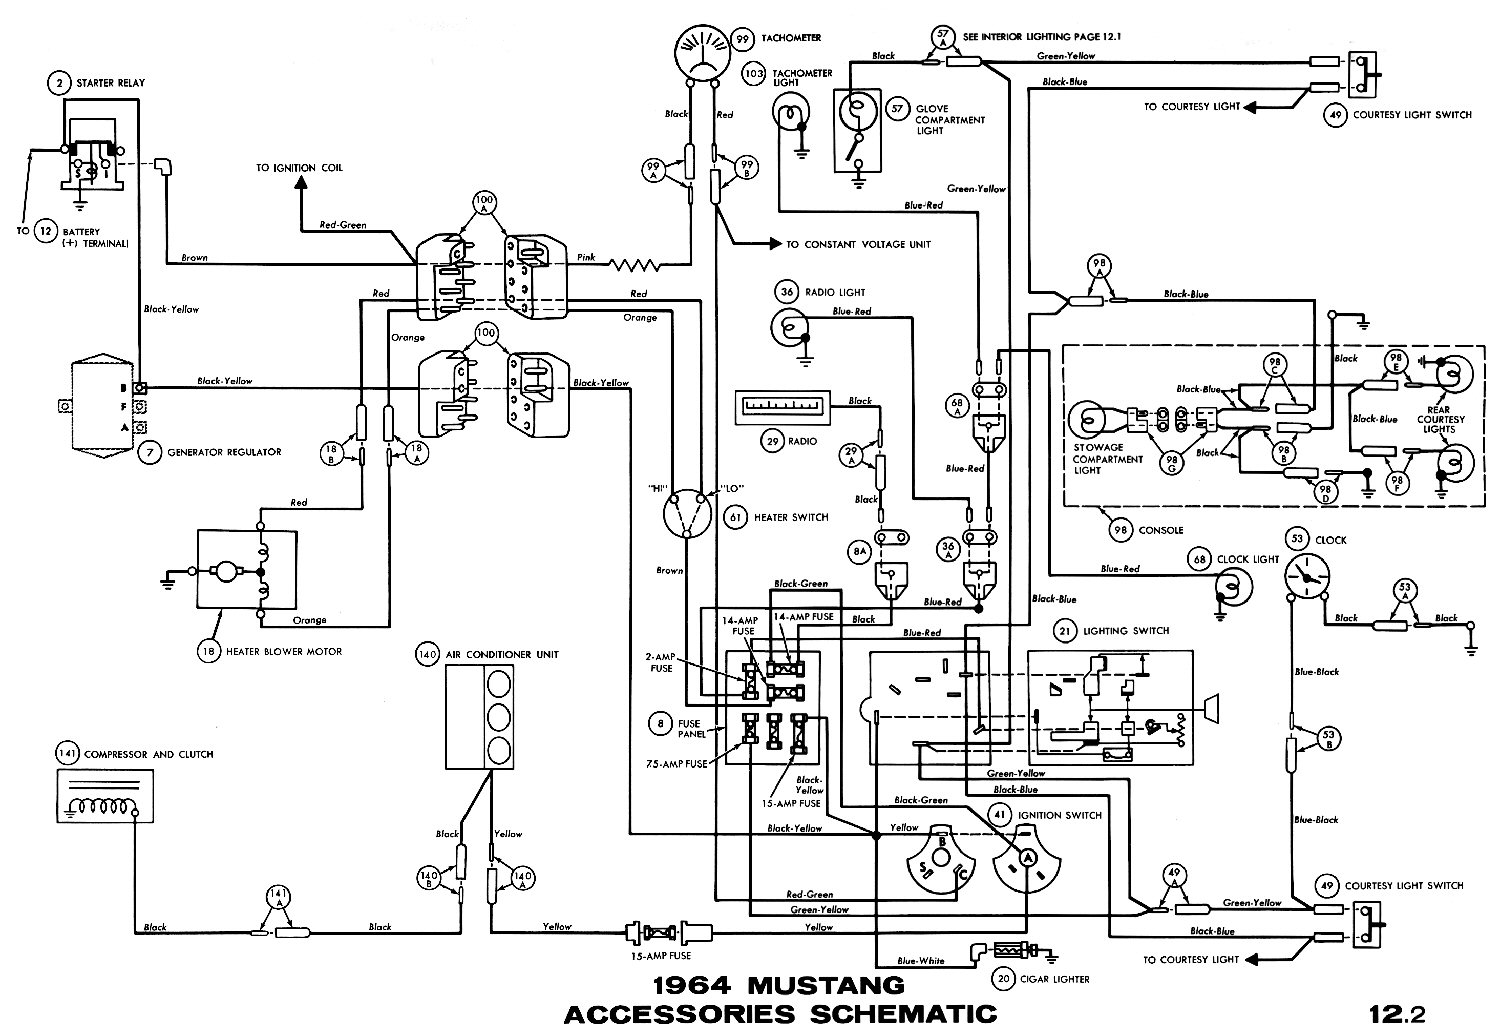 1964 Mustang Wiring Diagrams Average Joe Restoration 1968 Transmission Selector Diagram Accessories Pictorial Or Schematic Air Conditioner